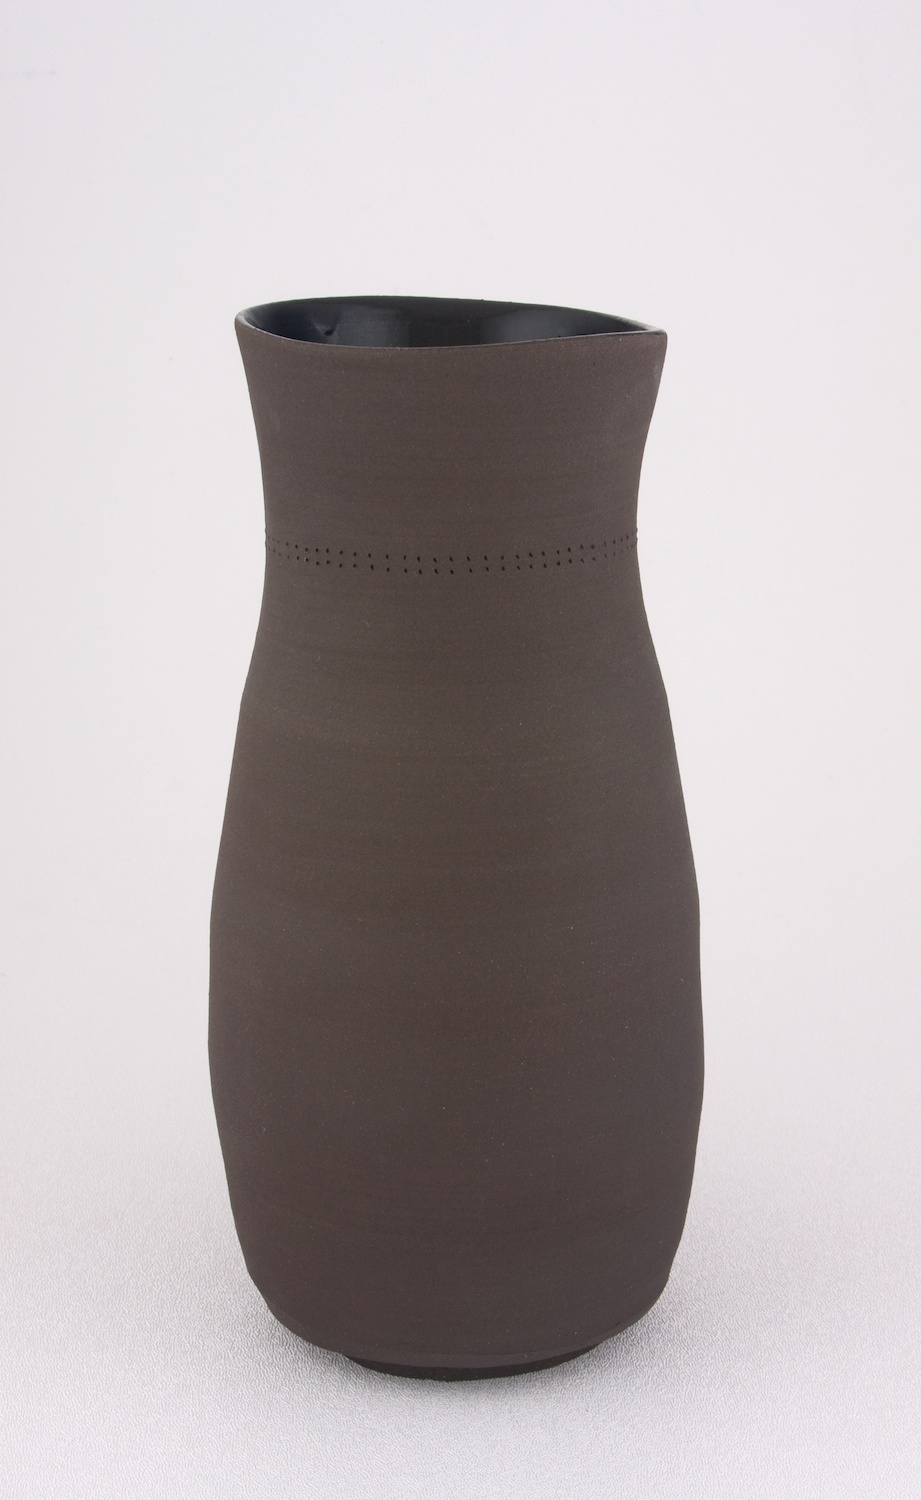 "Shio Kusaka Untitled (dot black 2) 2009 Stoneware 9 1/2"" x 4 1/2"" SK039"